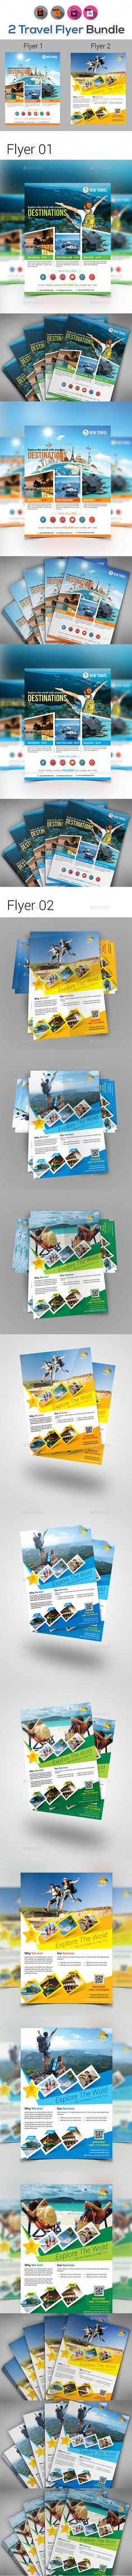 Holiday Travel | Tour #Flyers Templates - Holidays Events Download here: https://graphicriver.net/item/holiday-travel-tour-flyers-templates/19375587?ref=alena994